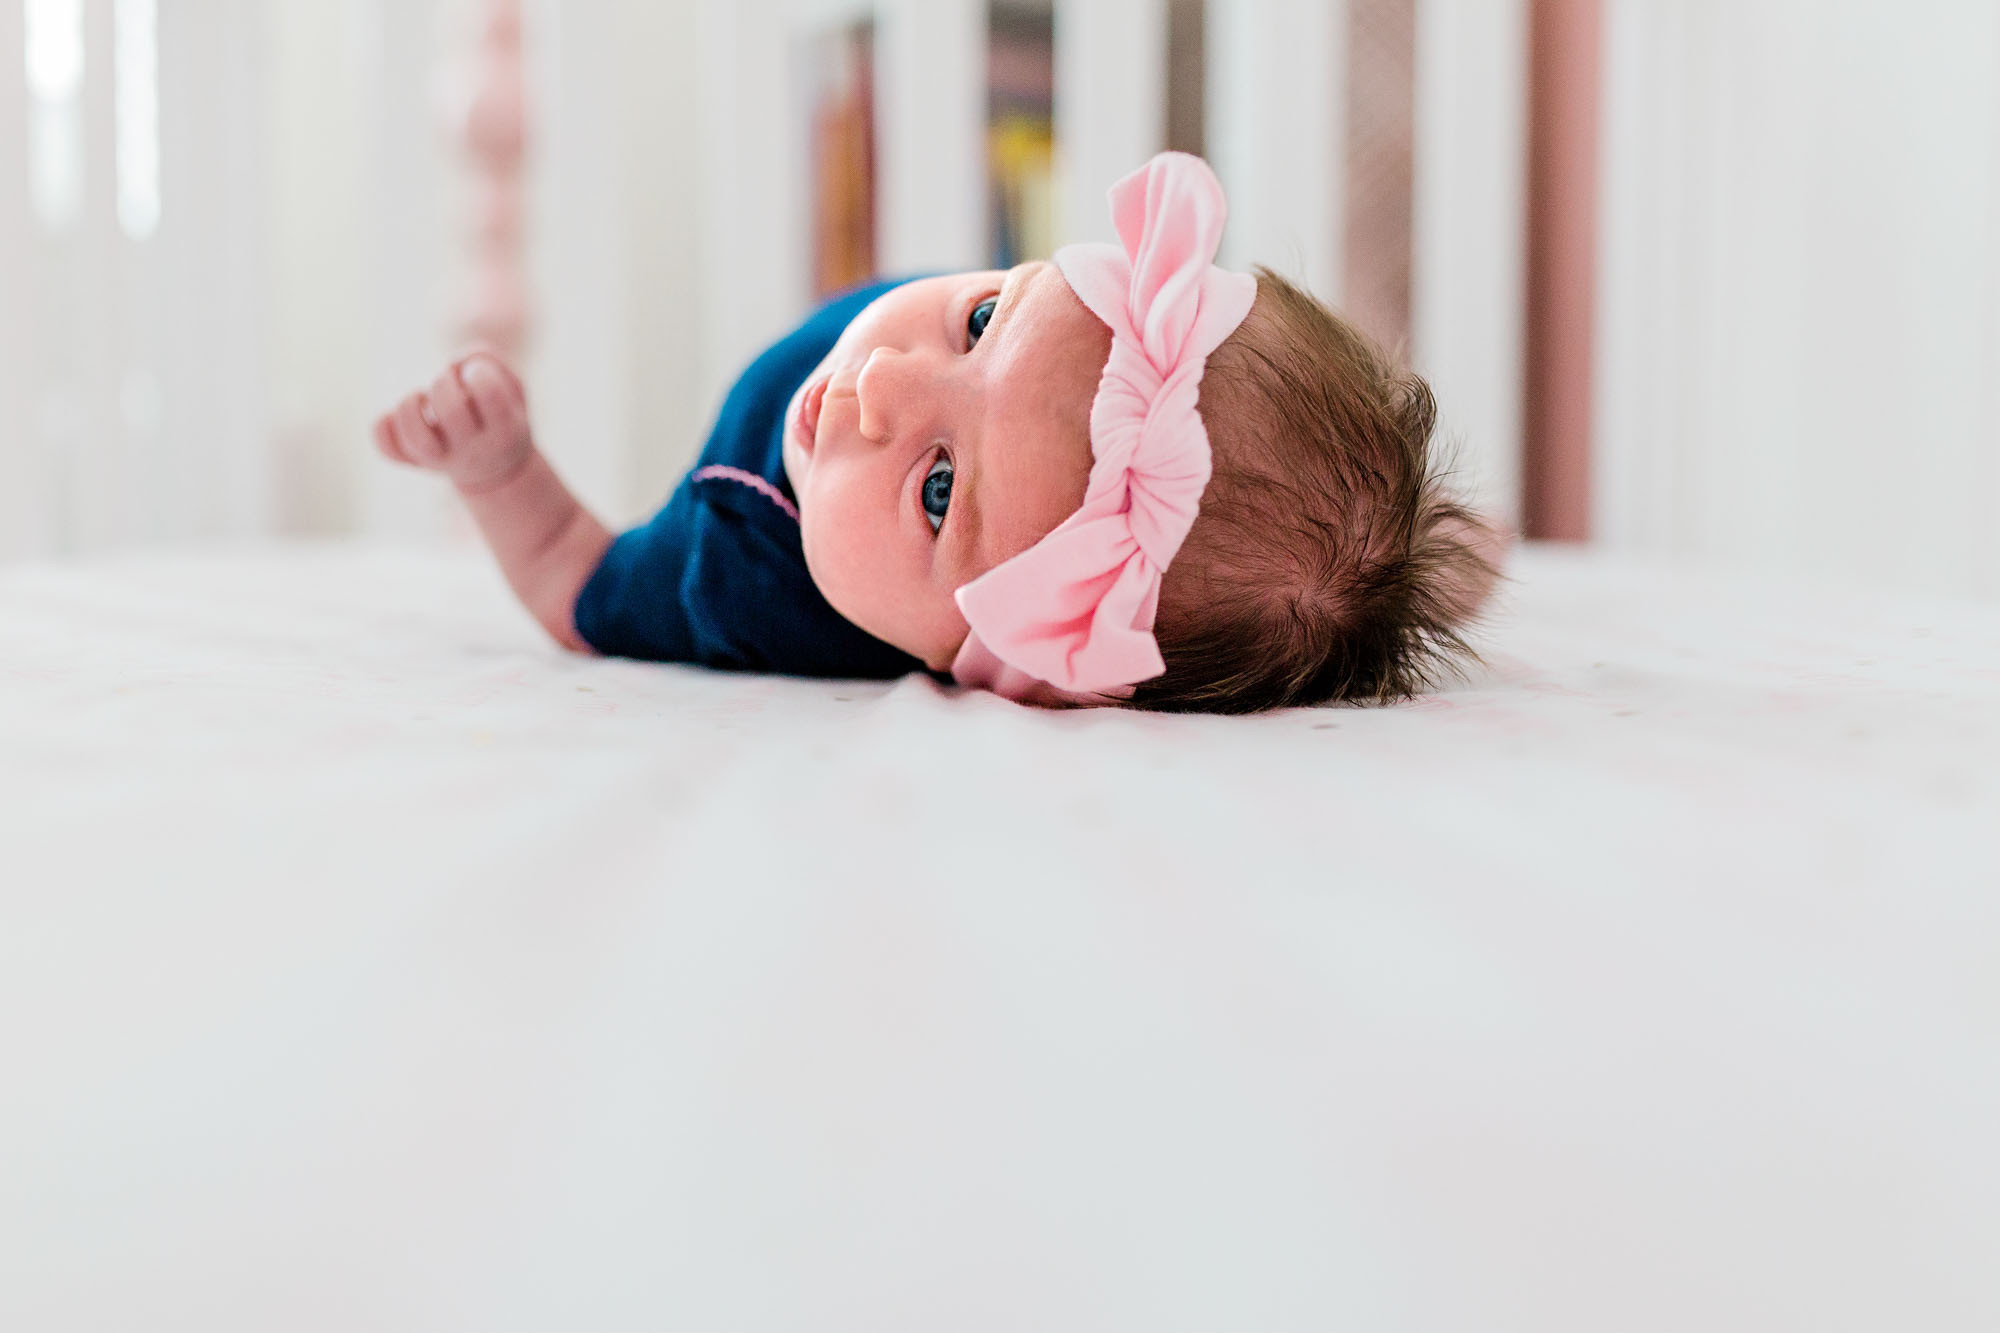 A newborn lays in her crib during an in-home lifestyle photo session with Amy Wright Photography in Sacramento, California.